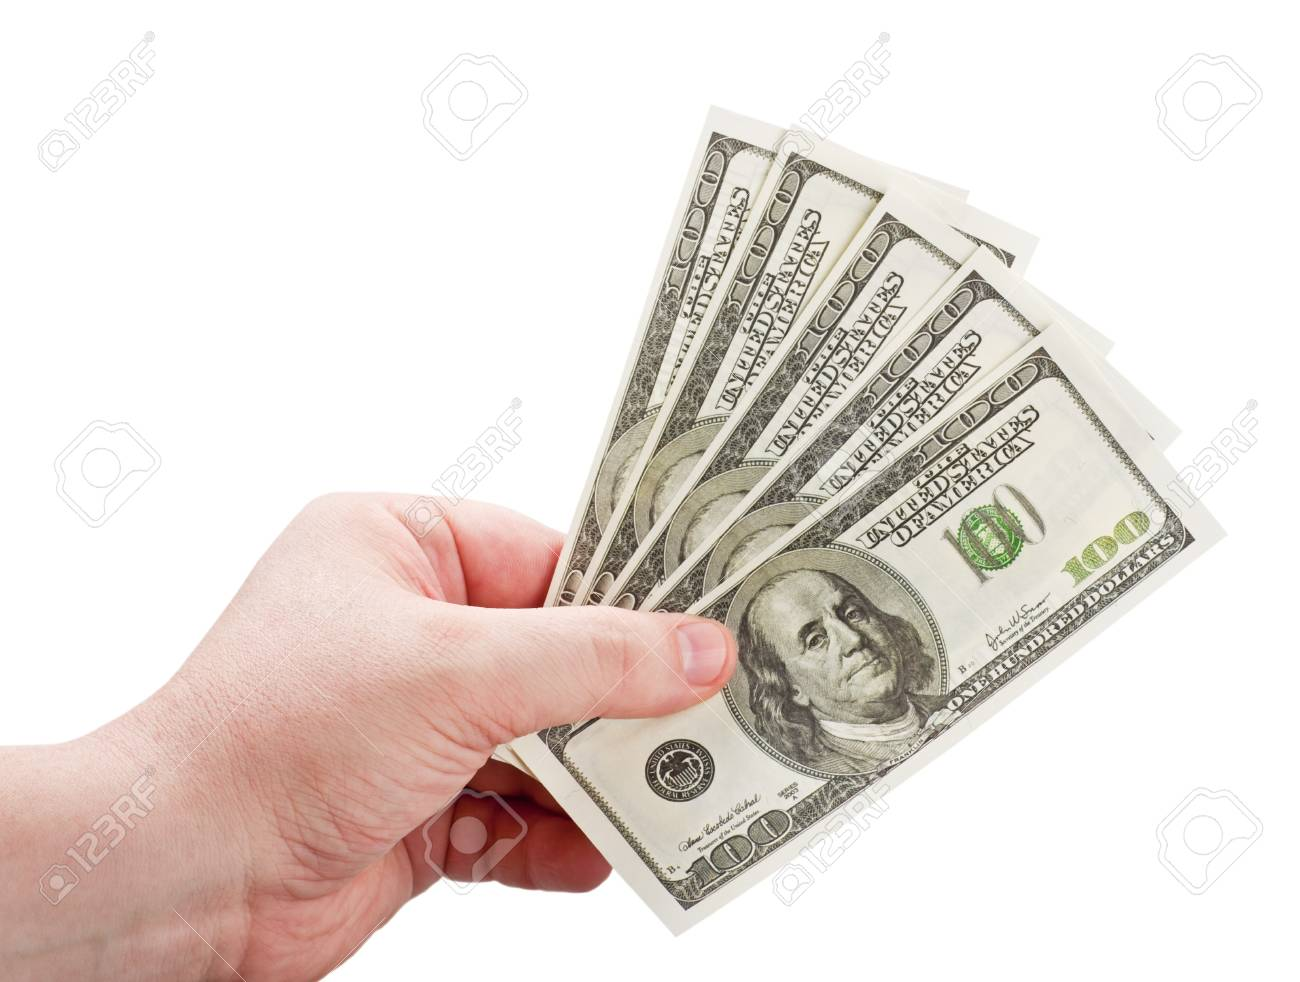 dollars in the man's hand isolated on white background Stock Photo - 15640352